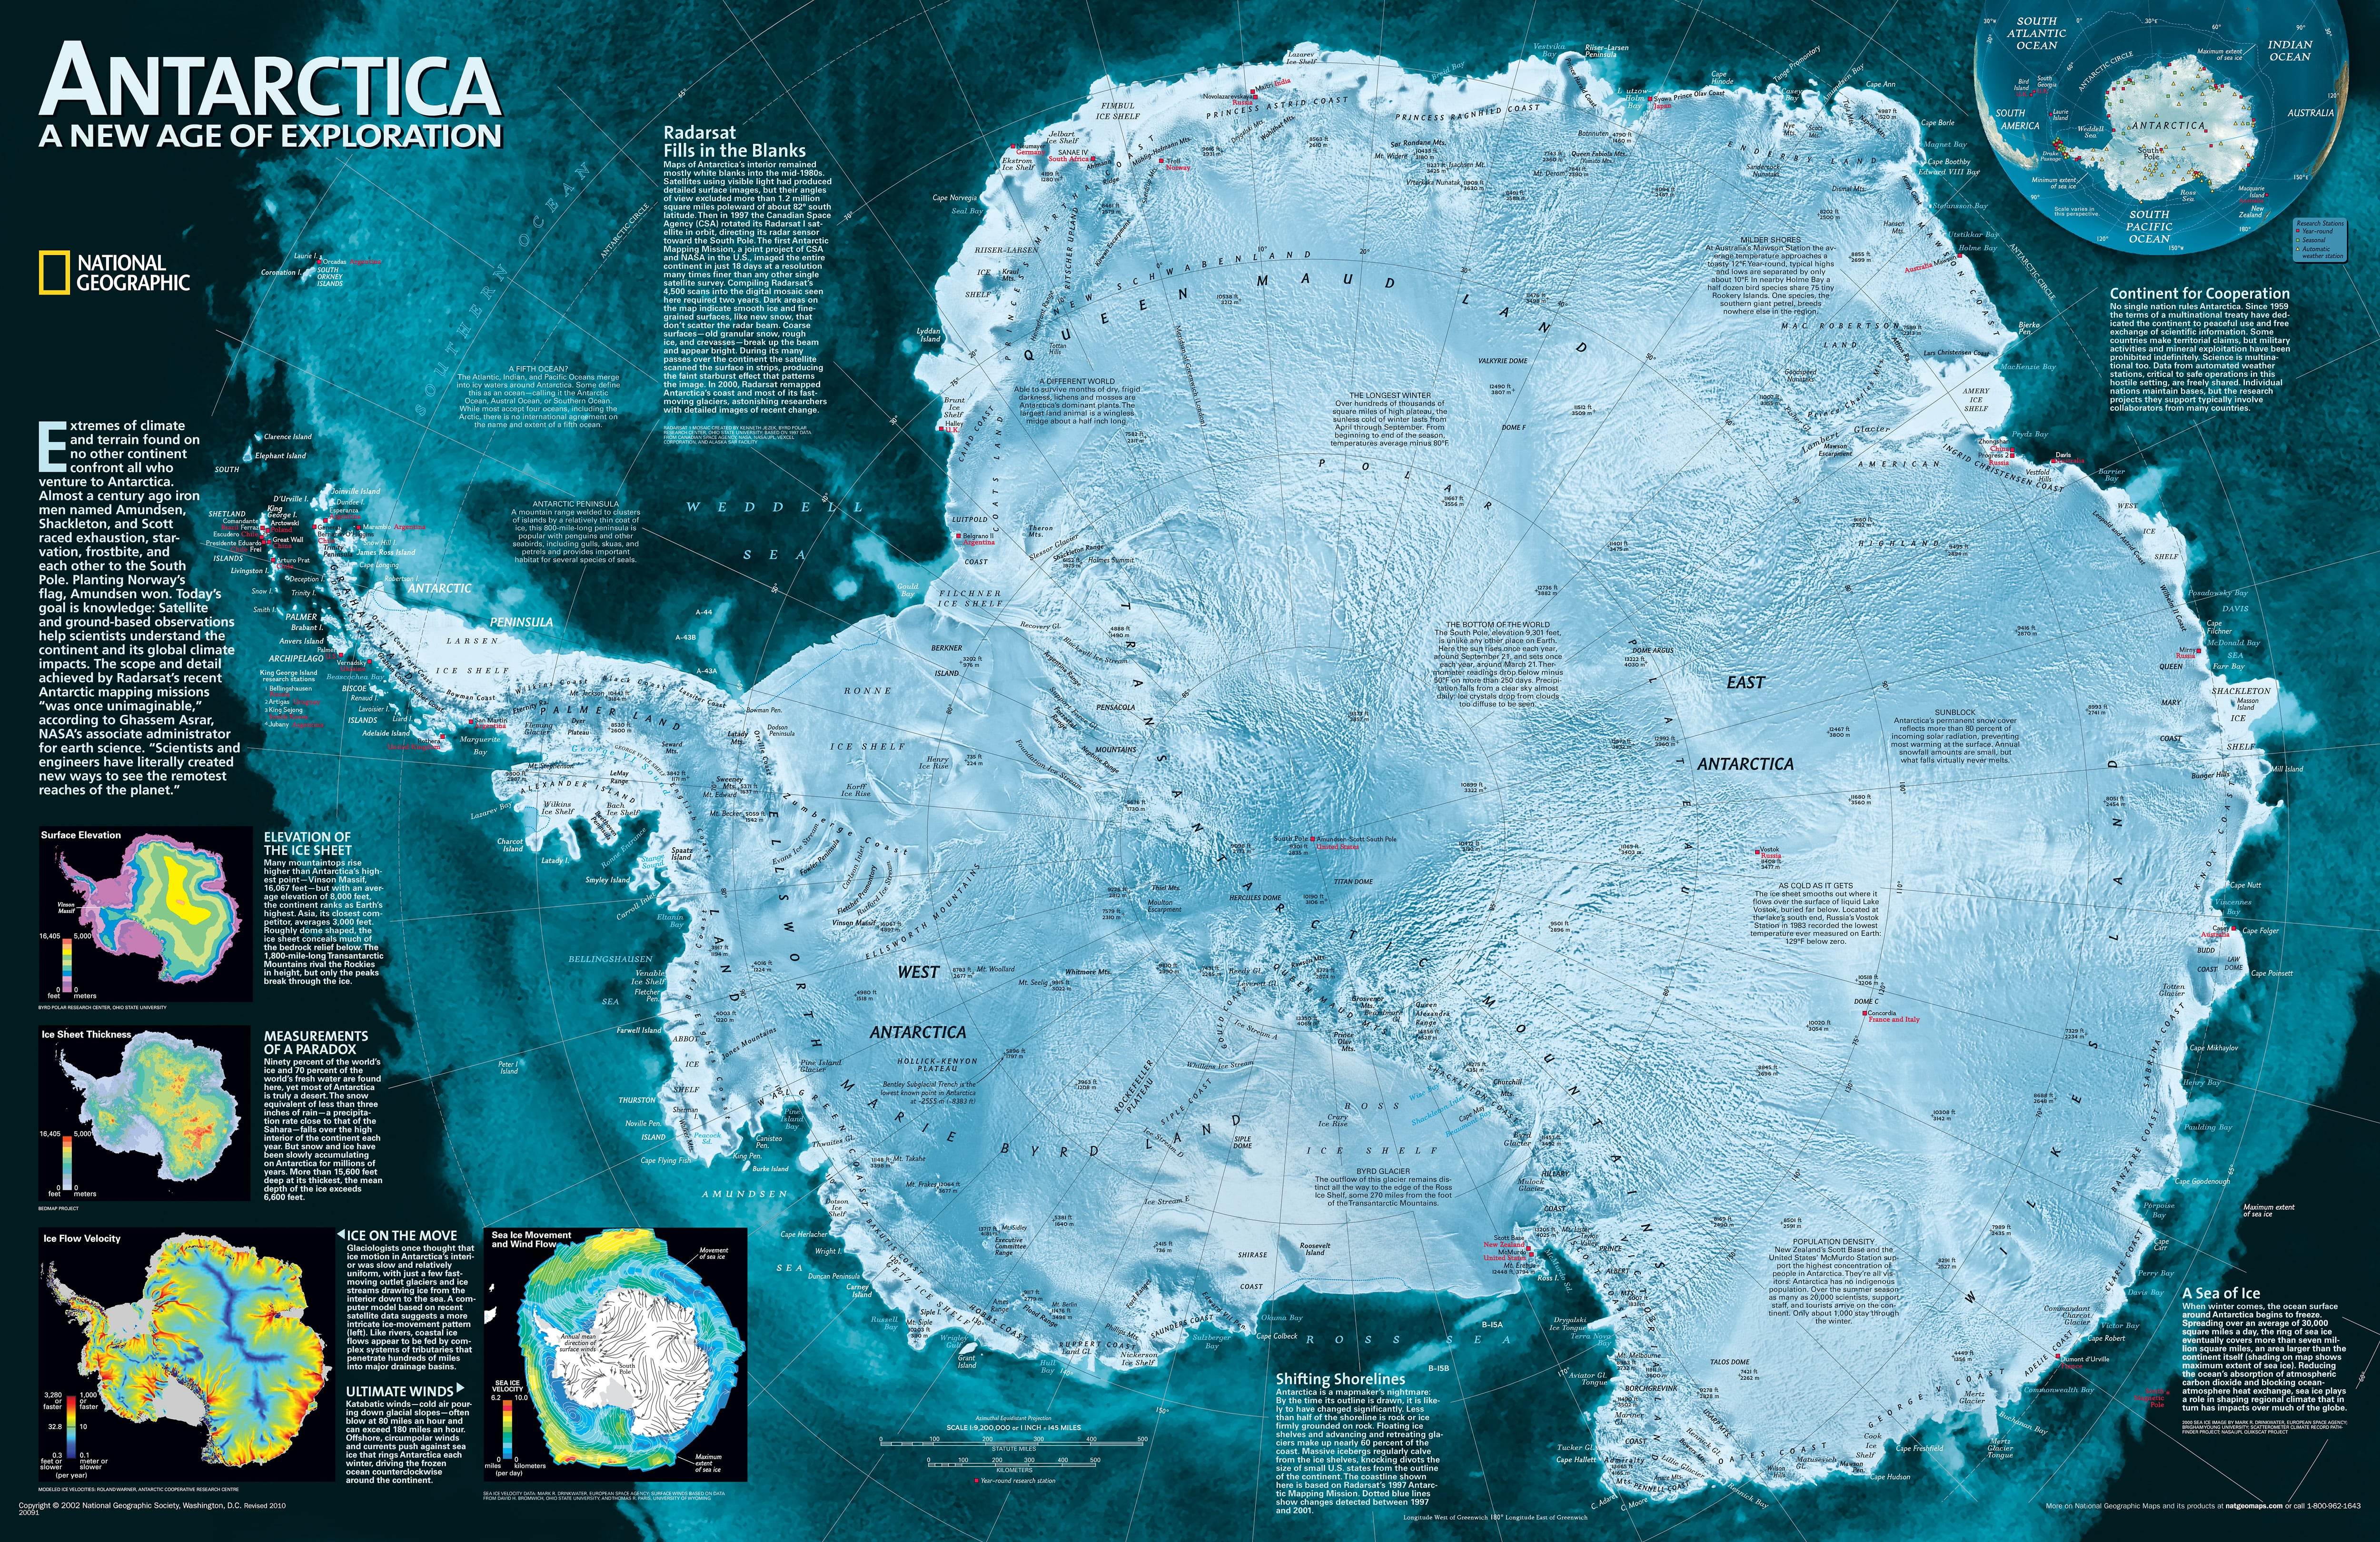 Antarctica Map Earth Satellite And Astro Poster - Antarctica map